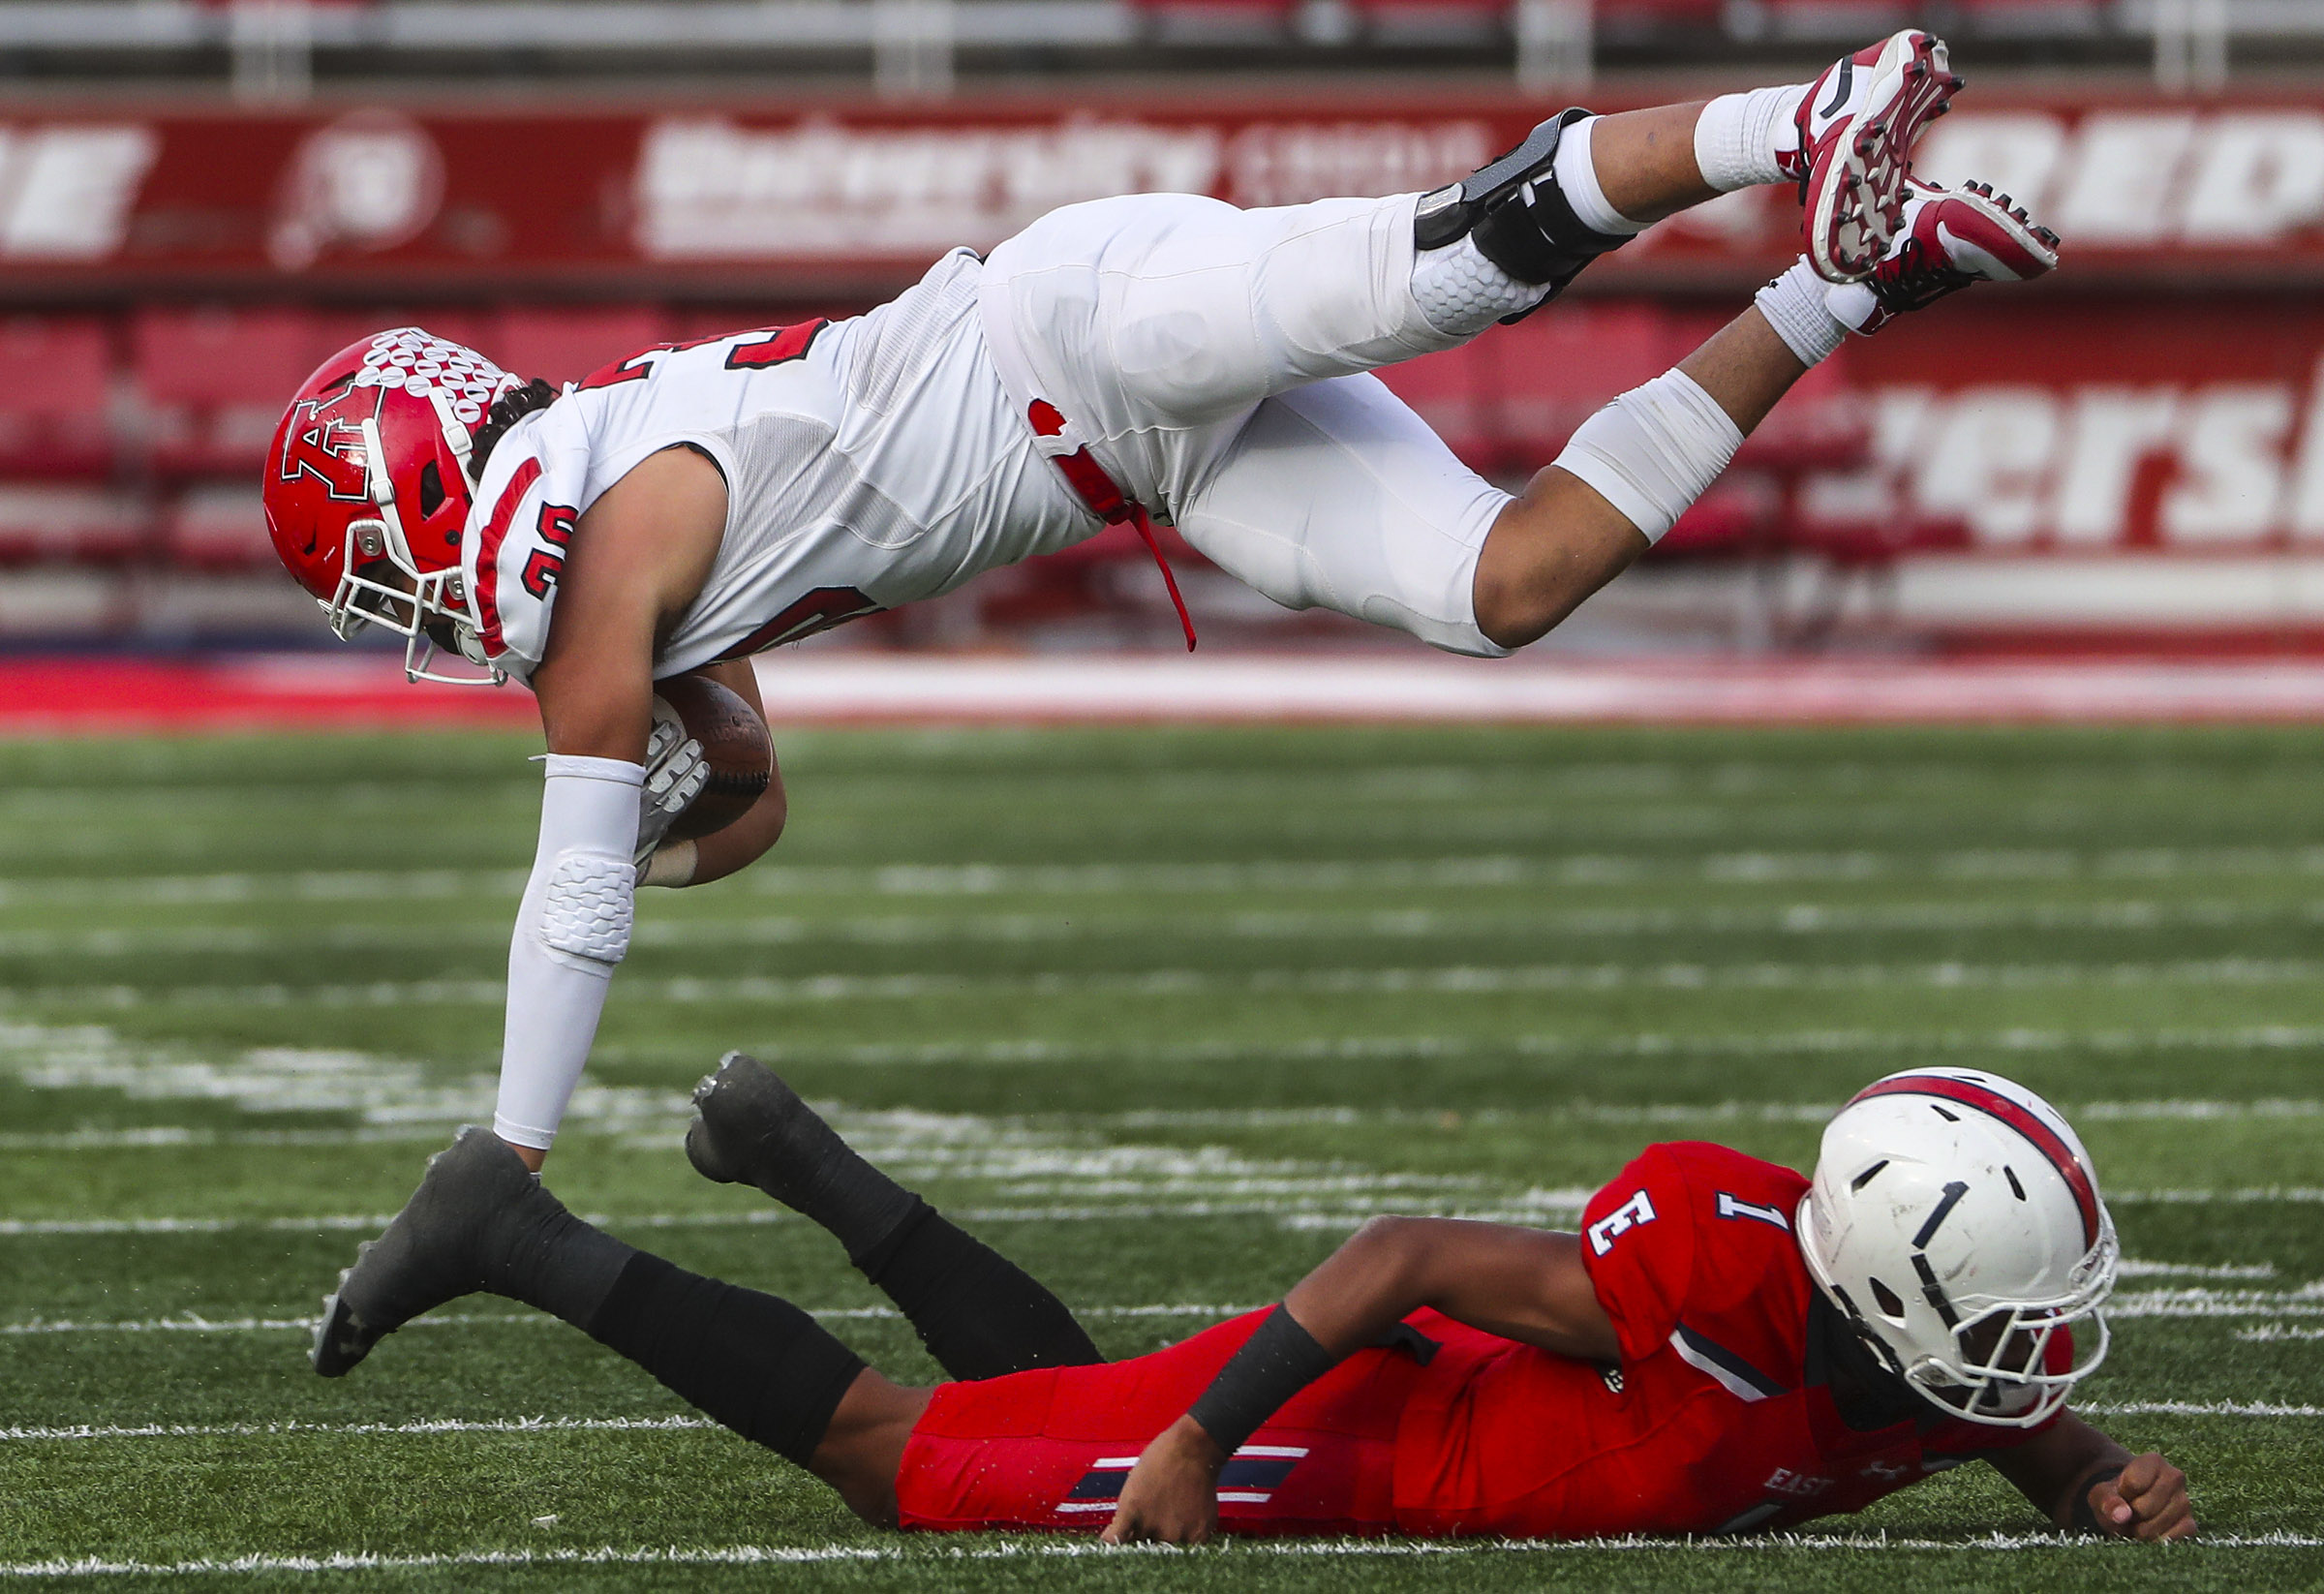 East safety Piuleini Tausinga knocks American Fork's Noah Moeaki into the air during 6A semifinal football game at Rice-Eccles Stadium in Salt Lake City on Friday, Nov. 15, 2019. The Cavemen defeated the Leopards, advancing to the championship game.